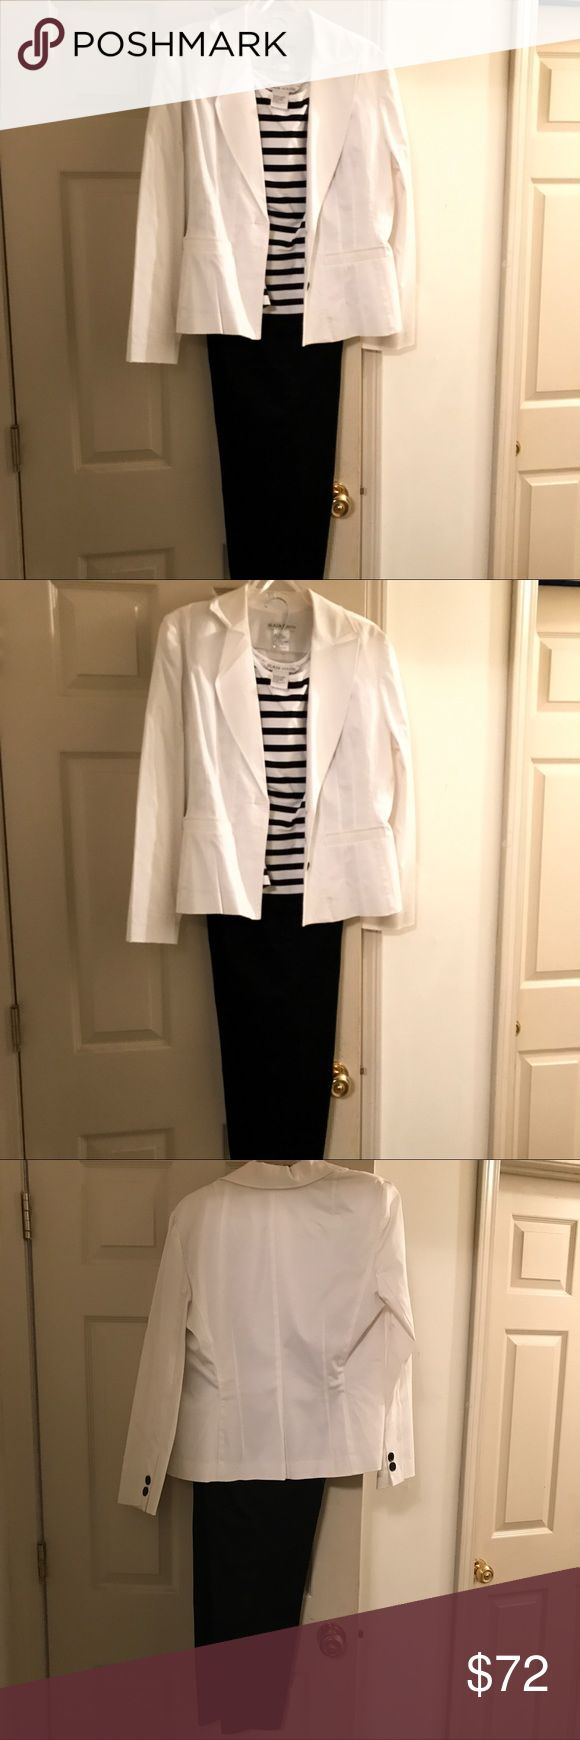 Women's pant suit black/white. Size 10 New never worn!  Women's Black and white pantsuit.  Size 10 Plaza South Other